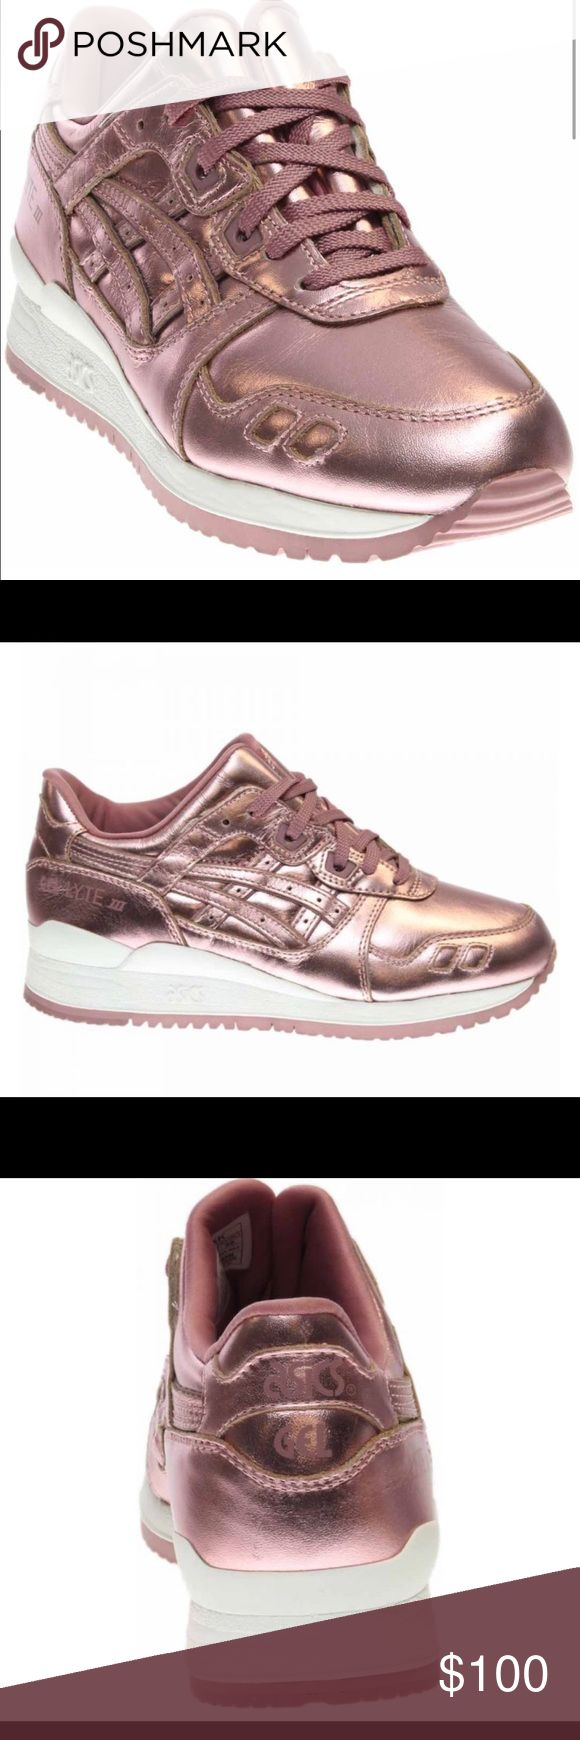 Related pictures split tongue jpg pictures to pin on pinterest - Asics Gel Lyte Iii Rose Gold Size 8 Sneakers Nwt Nwt